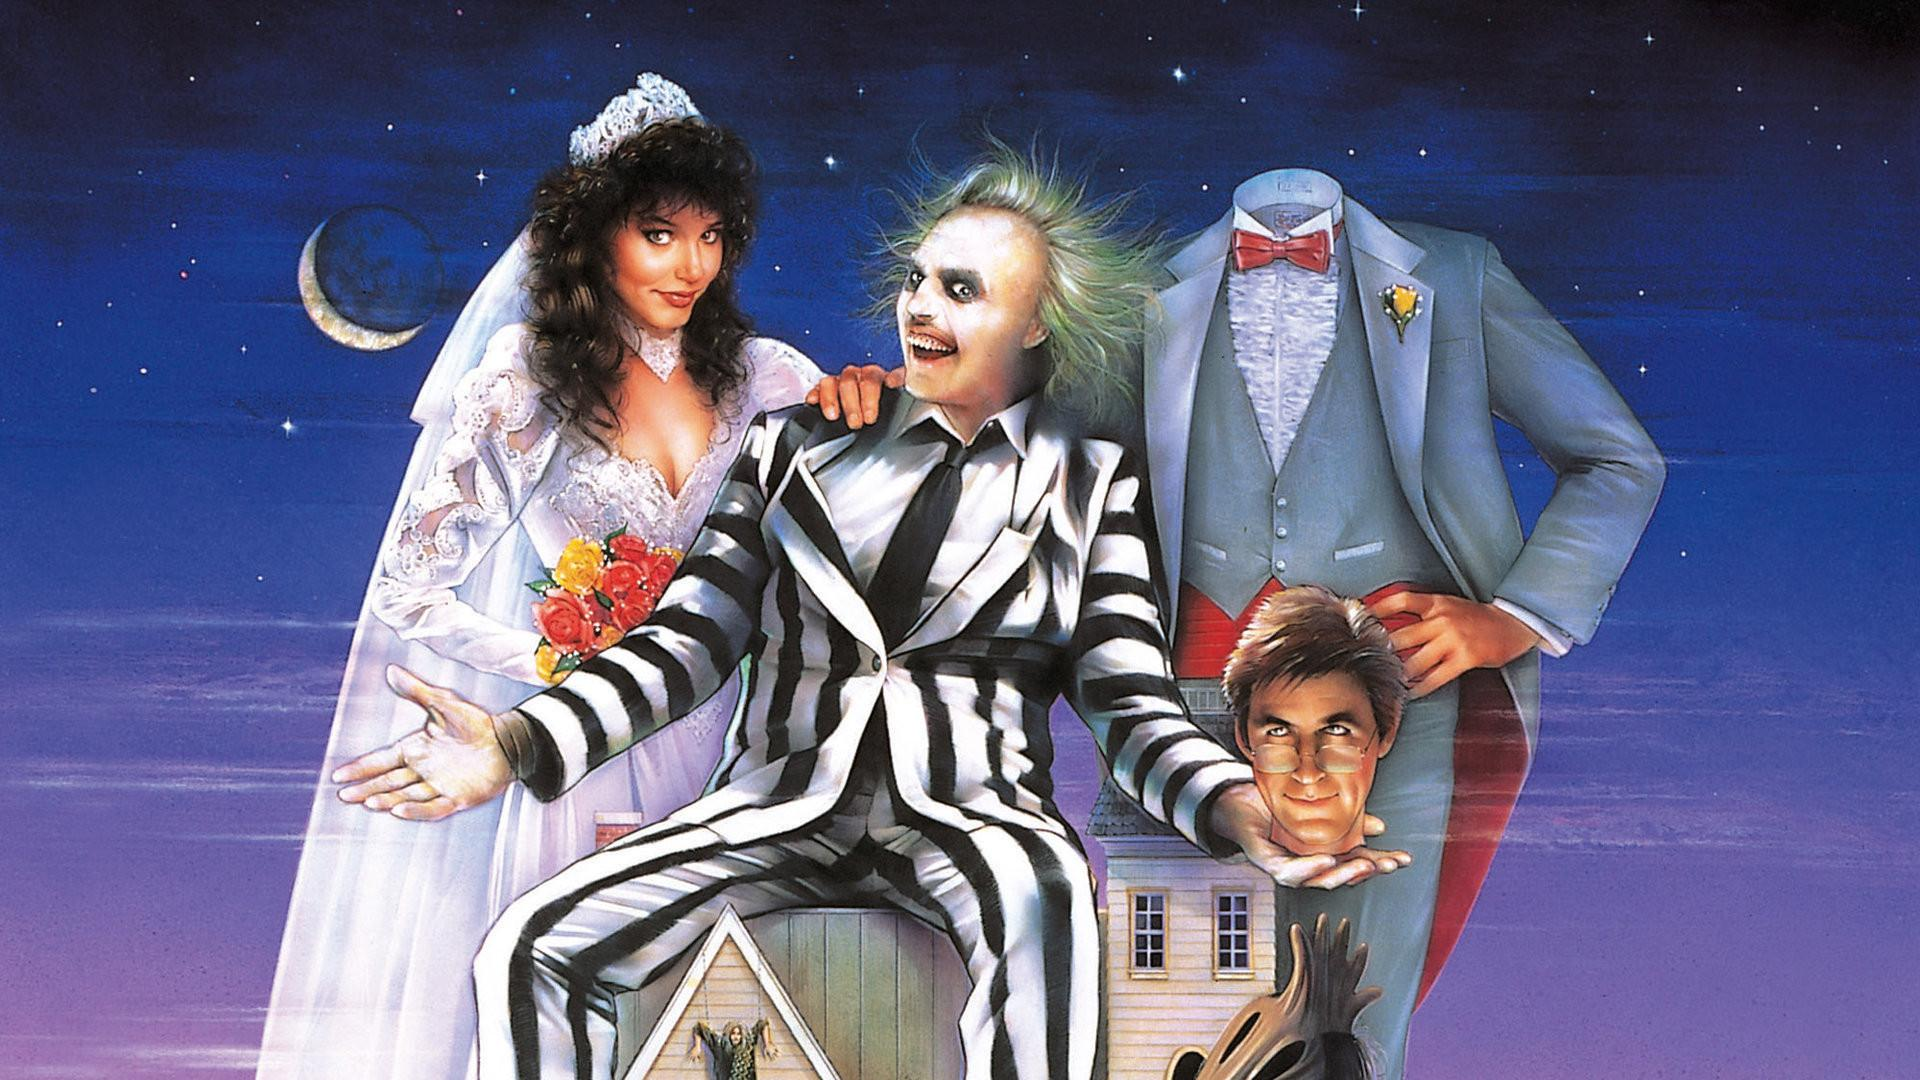 http://screencritix.com/wp-content/uploads/2013/11/beetlejuice-1.jpg